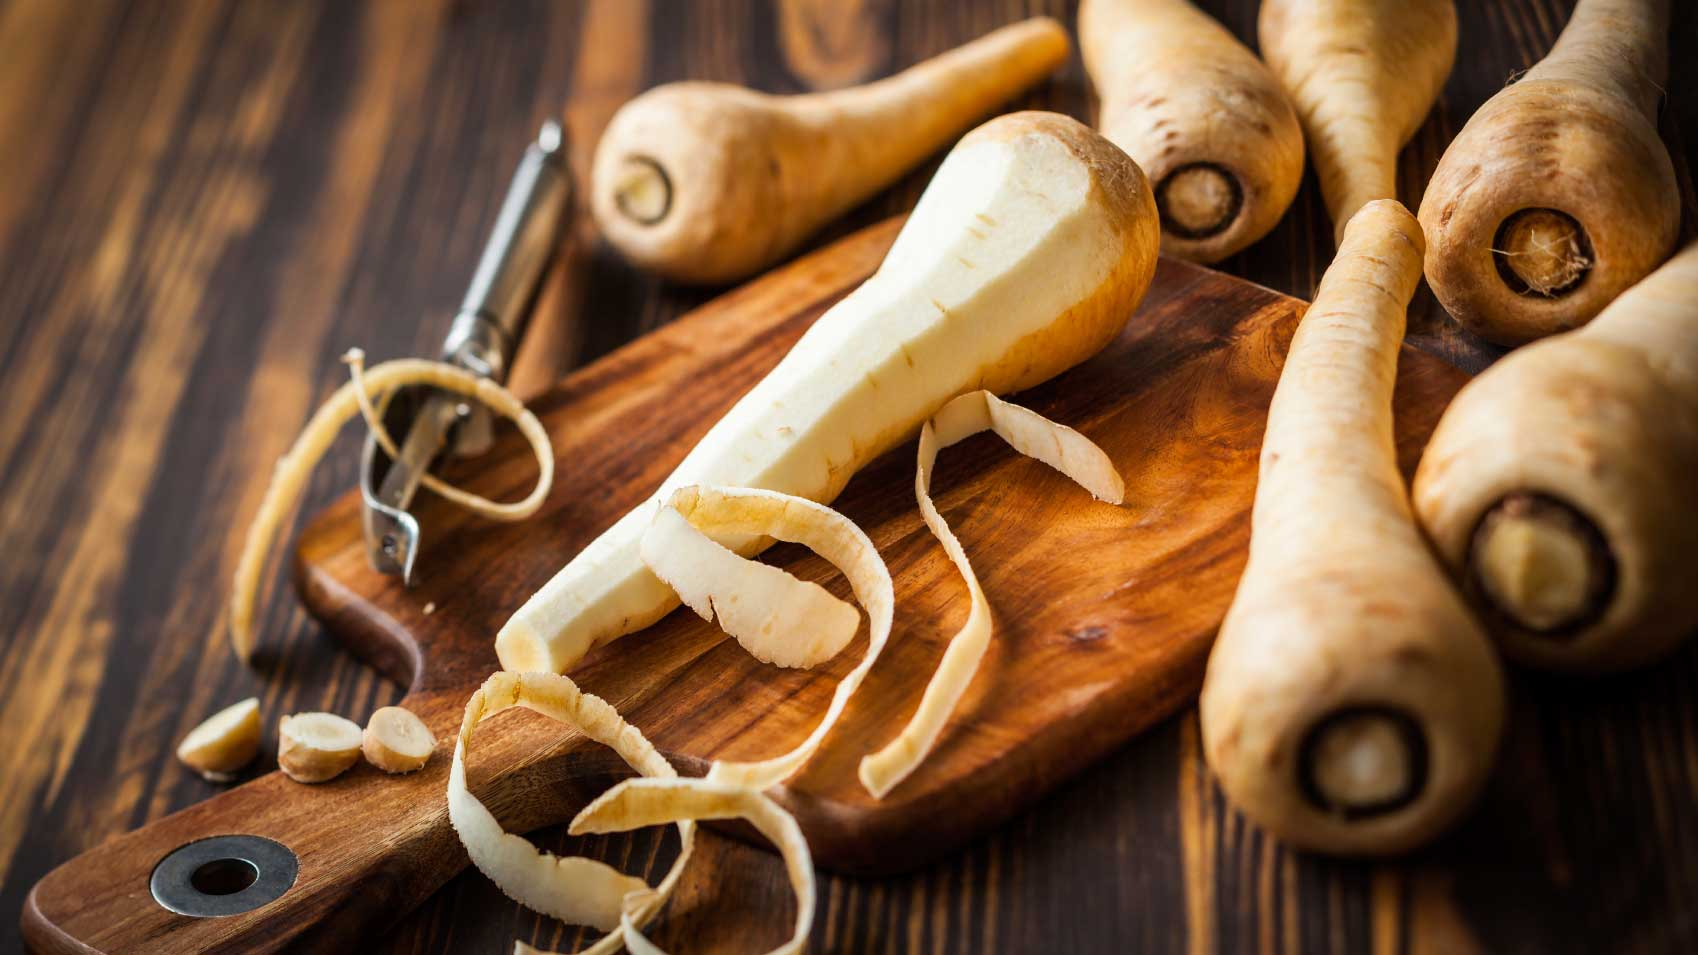 are parsnips good for you